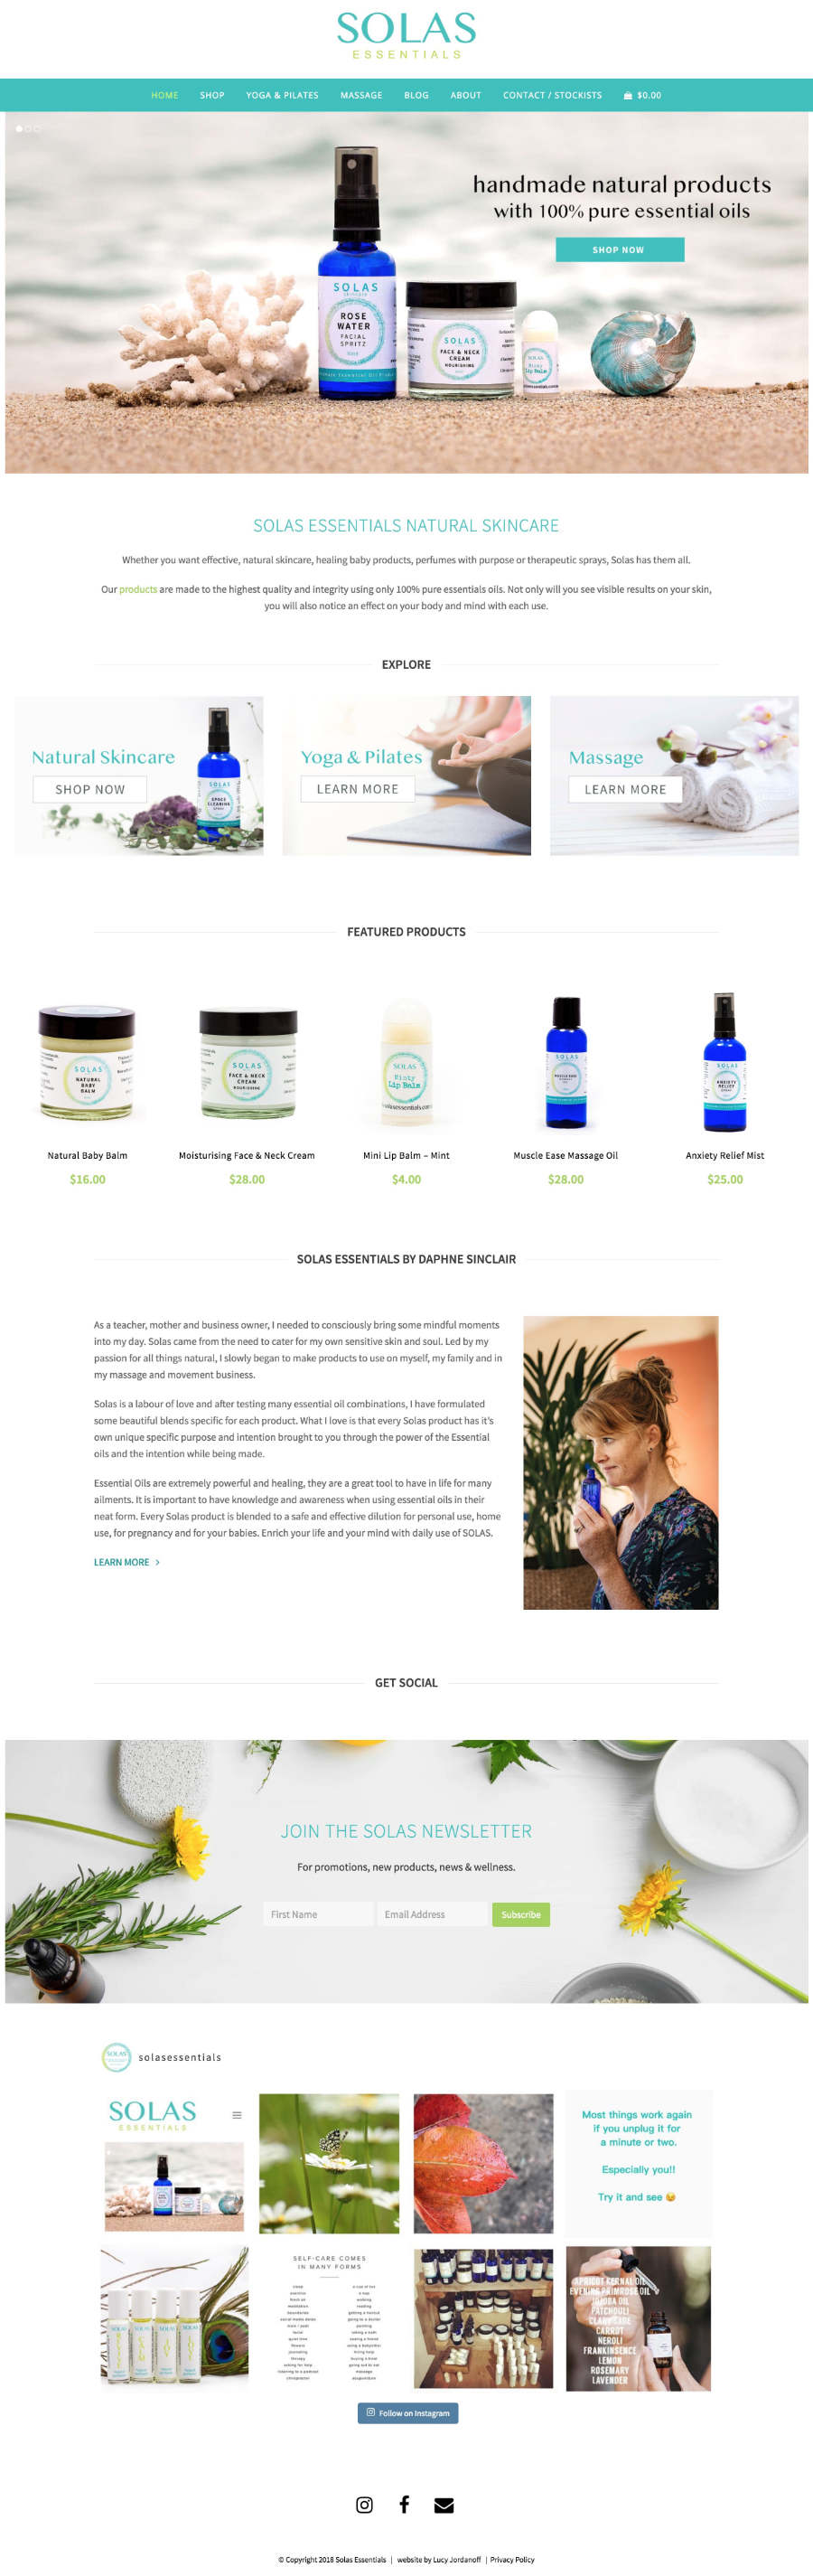 Solas Essentials Lucy Jordanoff Web Design